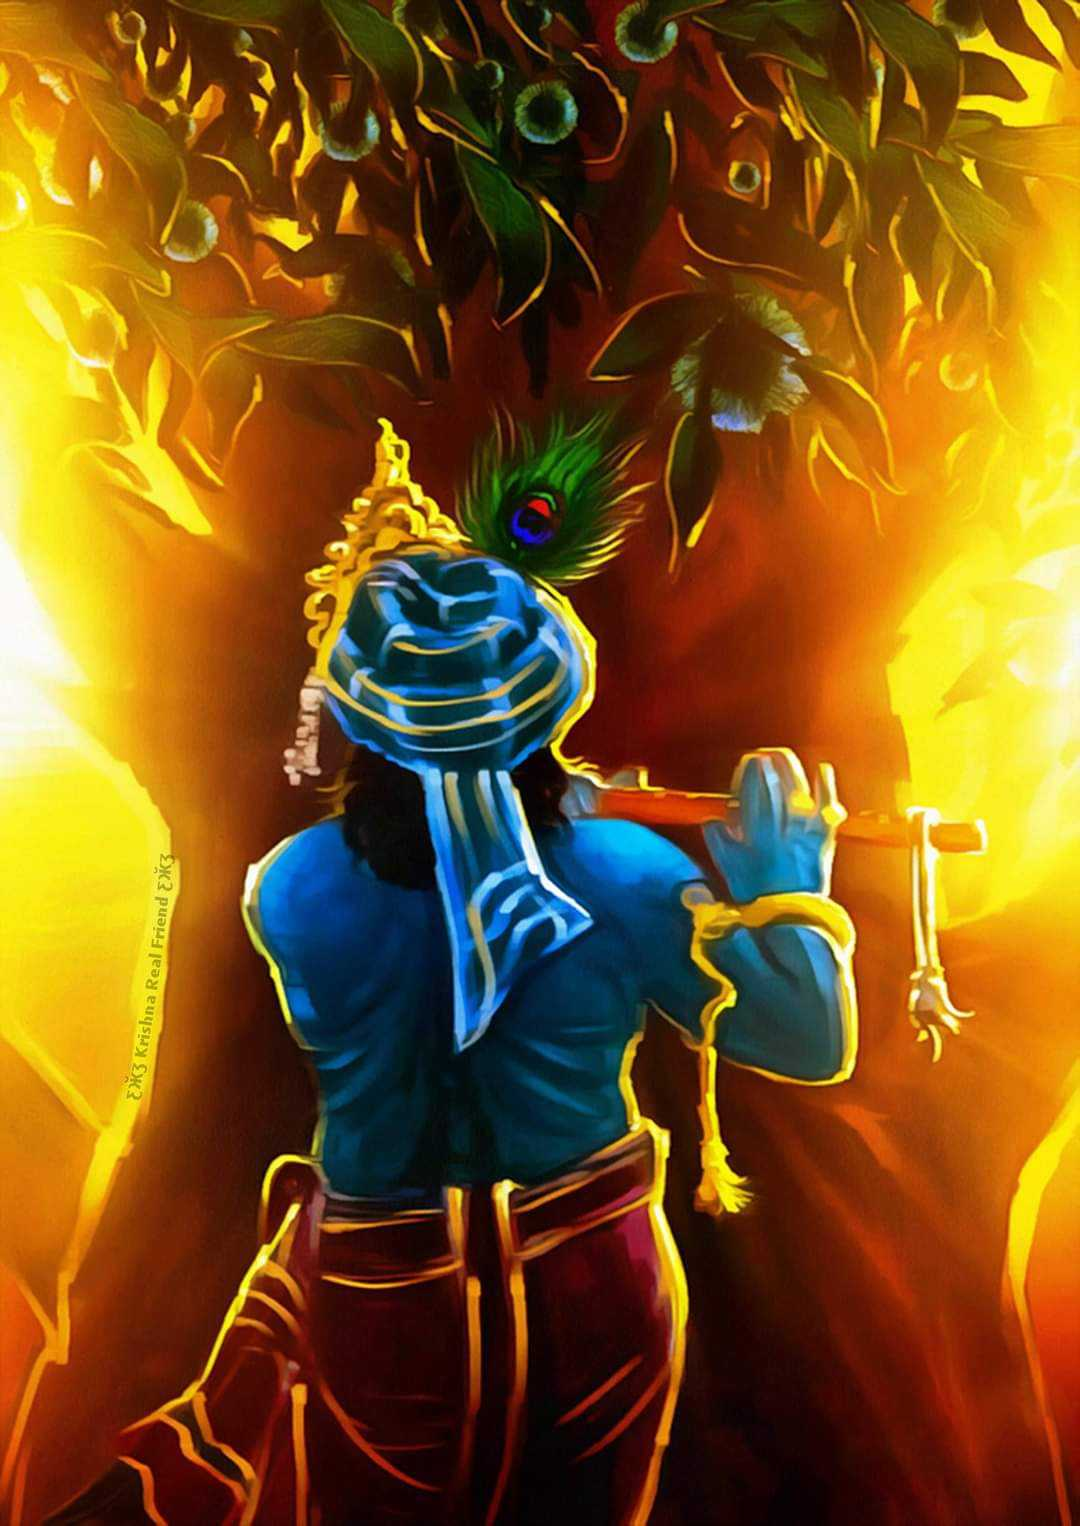 Lord Krishna Animated Beautiful Wallpaper - God krishna animated hd wallpaper for beautiful painting. Krishna cute picture from back is looking so awesome.